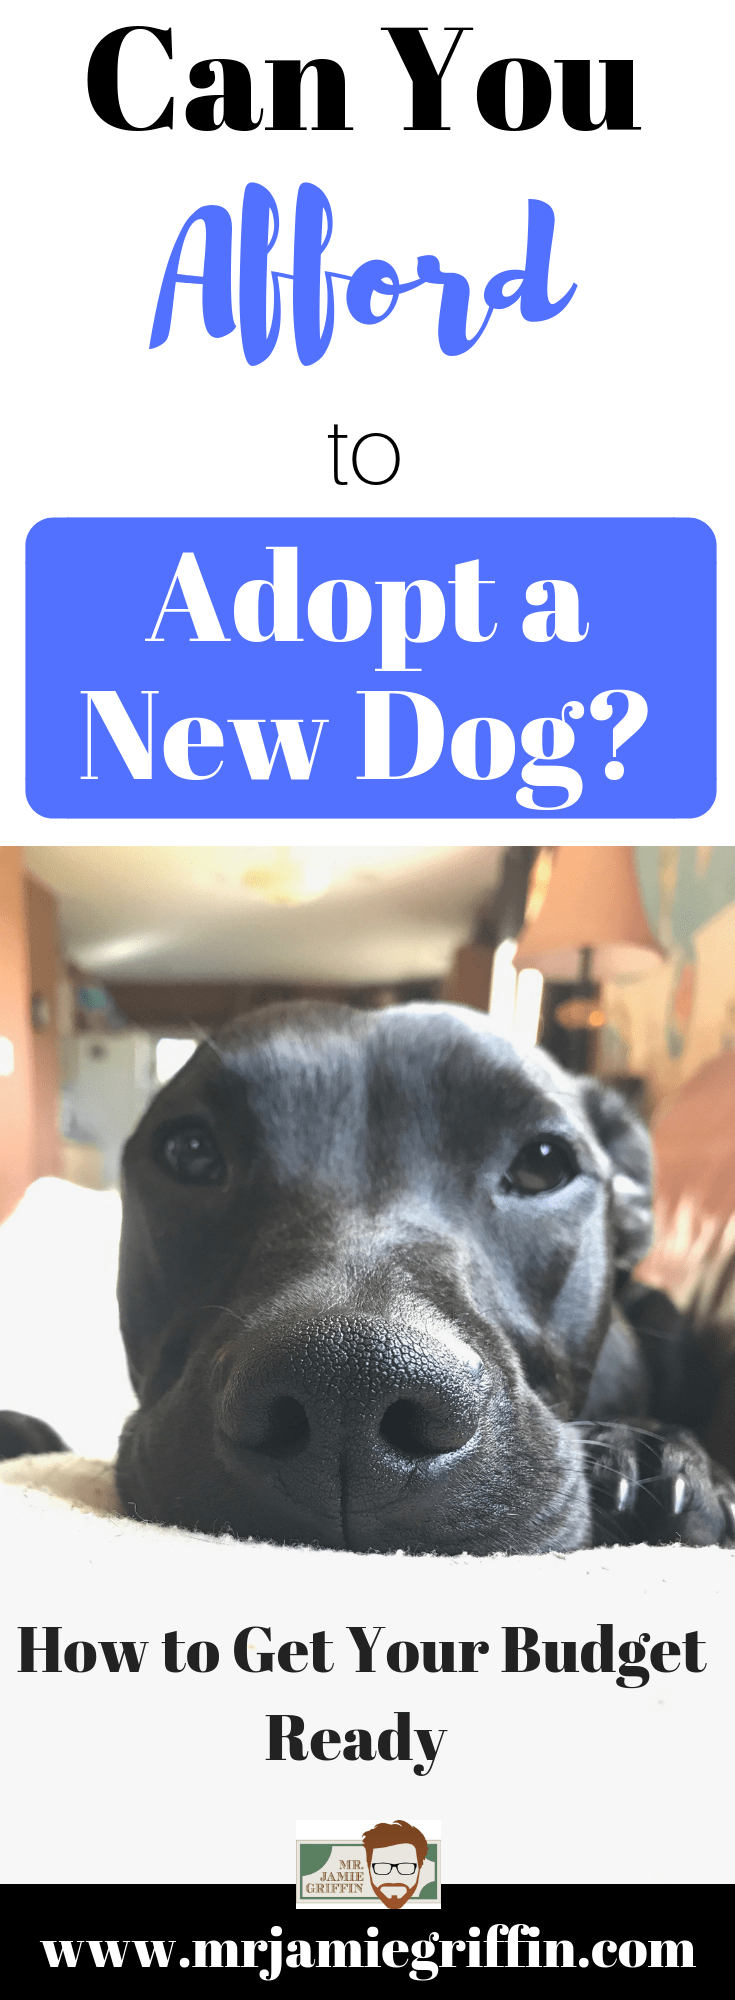 Can You Afford to Adopt a New Dog?